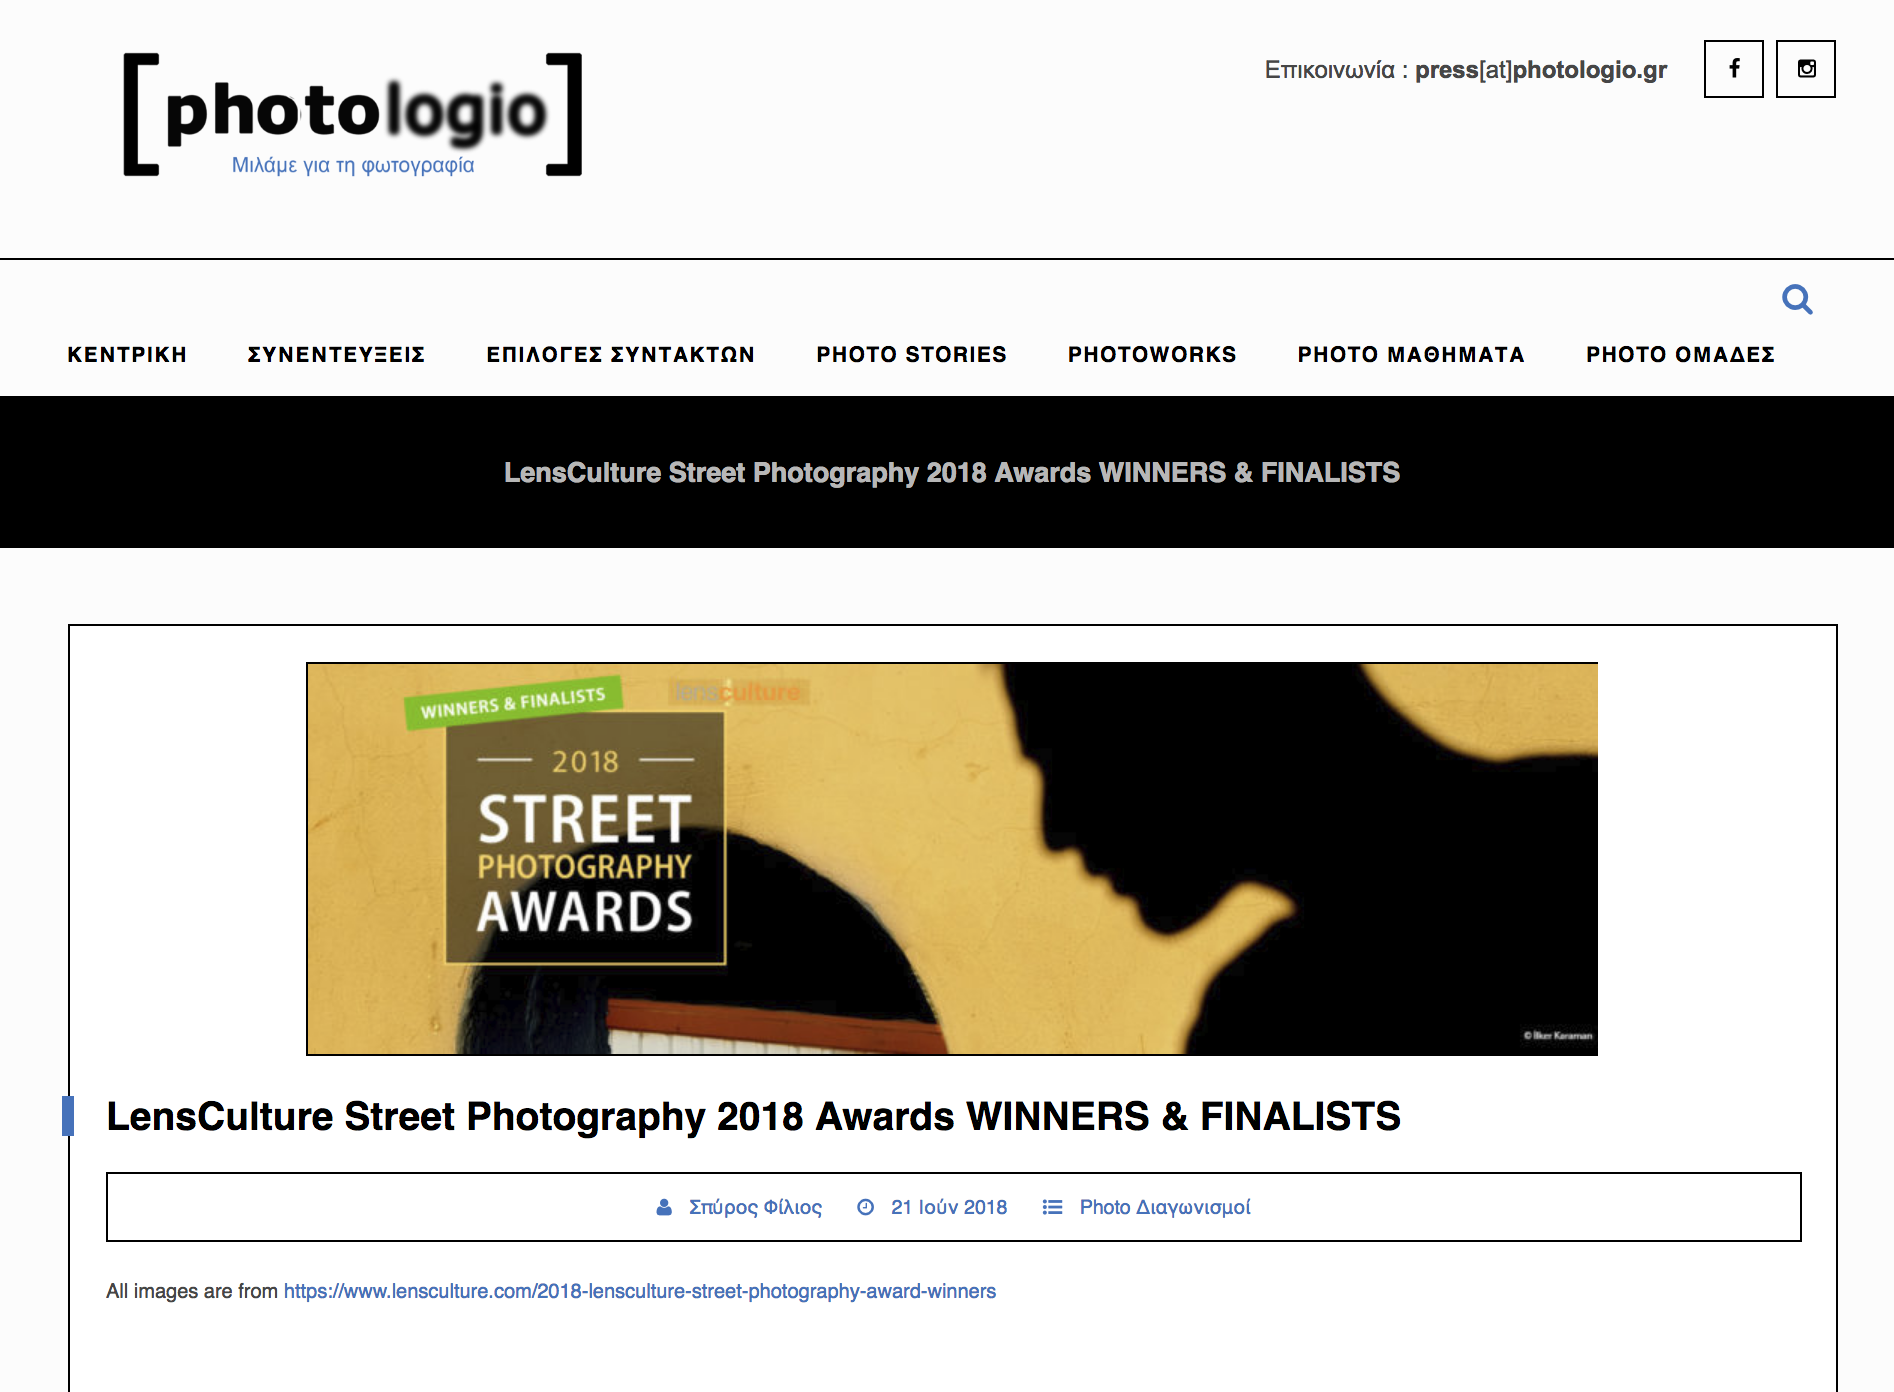 Photologio: LensCulture Street Photography 2018 Awards Winners & Finalists -